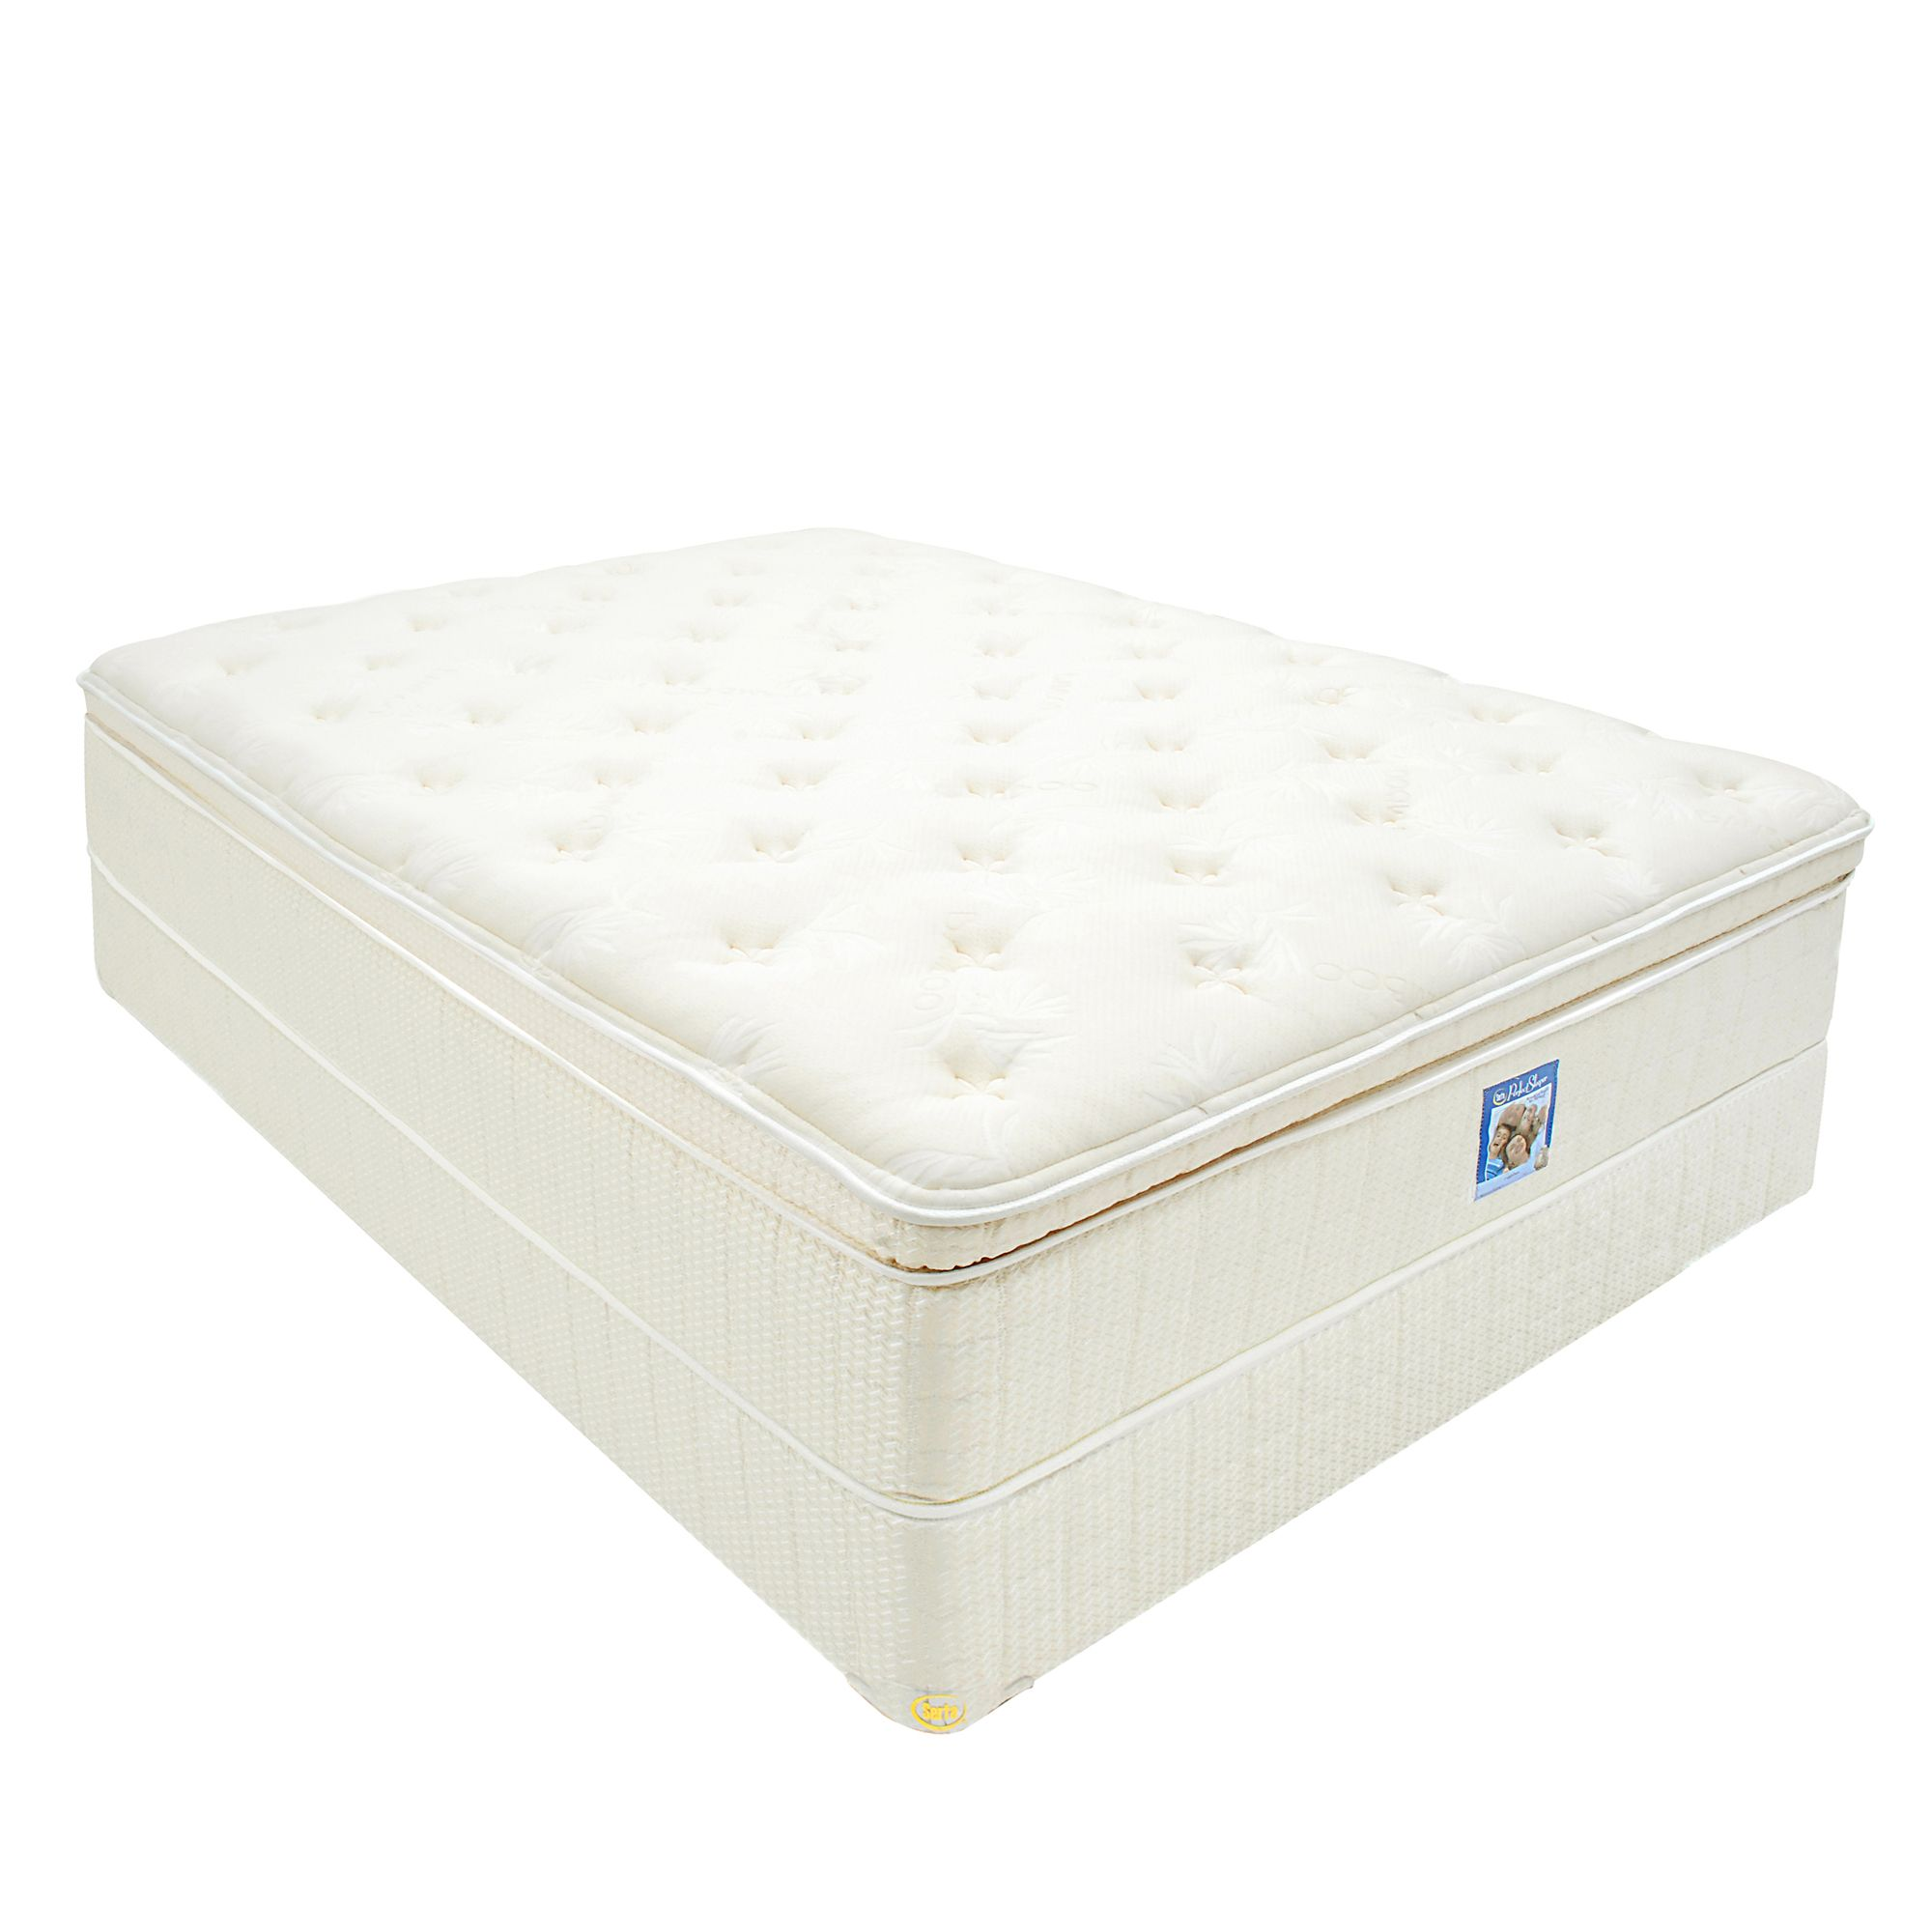 Serta Perfect Sleeper Reese Limited Firm II EuroTop King Mattress